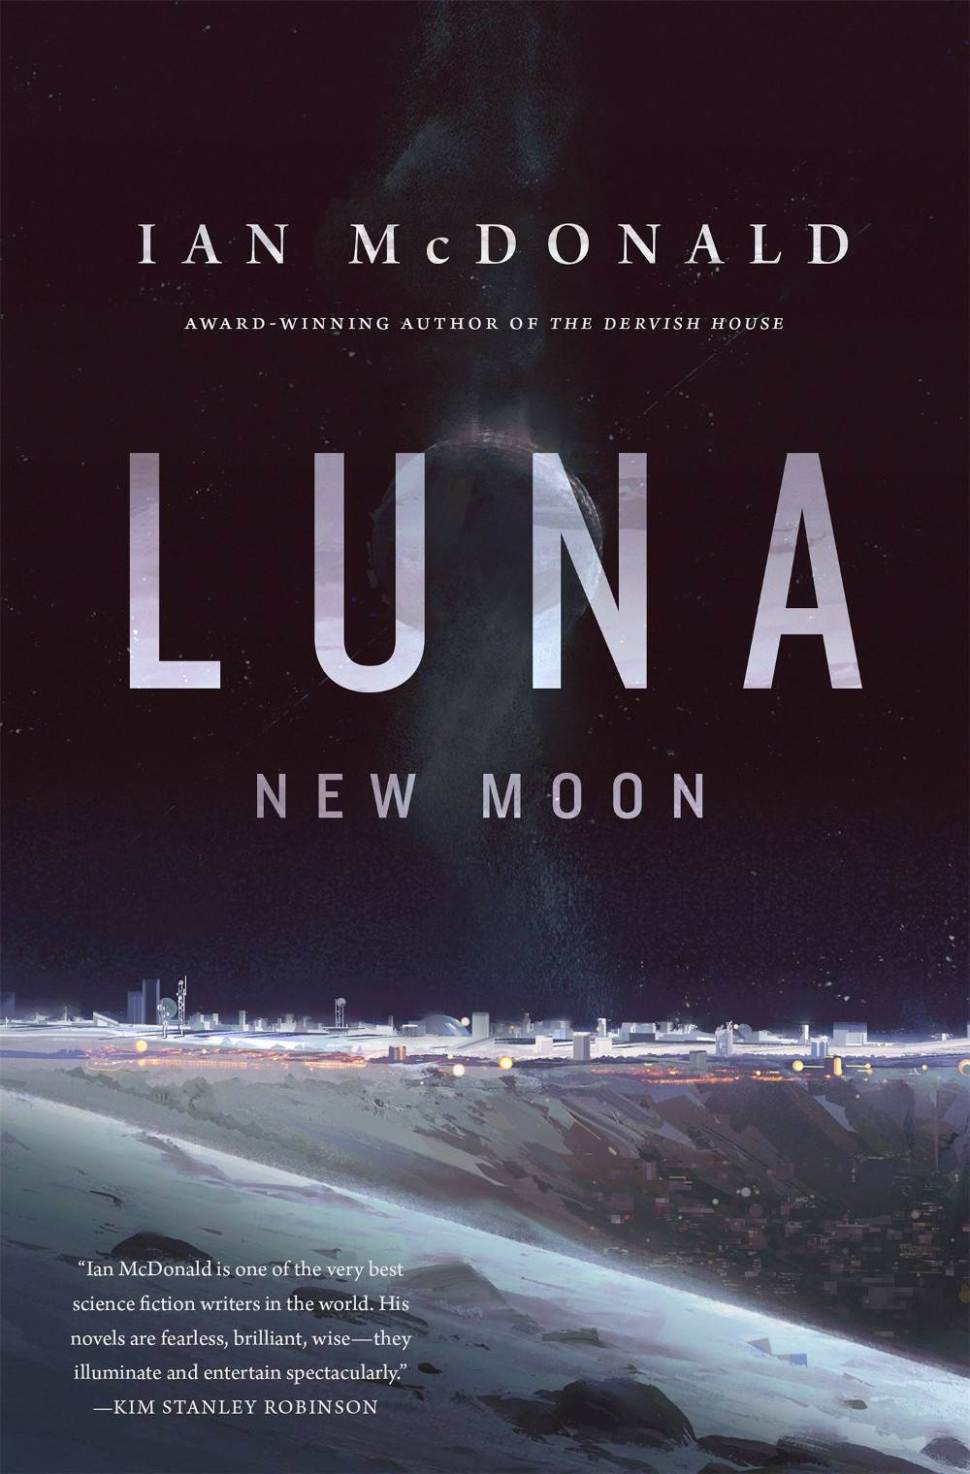 Podcast: Ian McDonald talks about Luna: New Moon (also coming to CBS!)